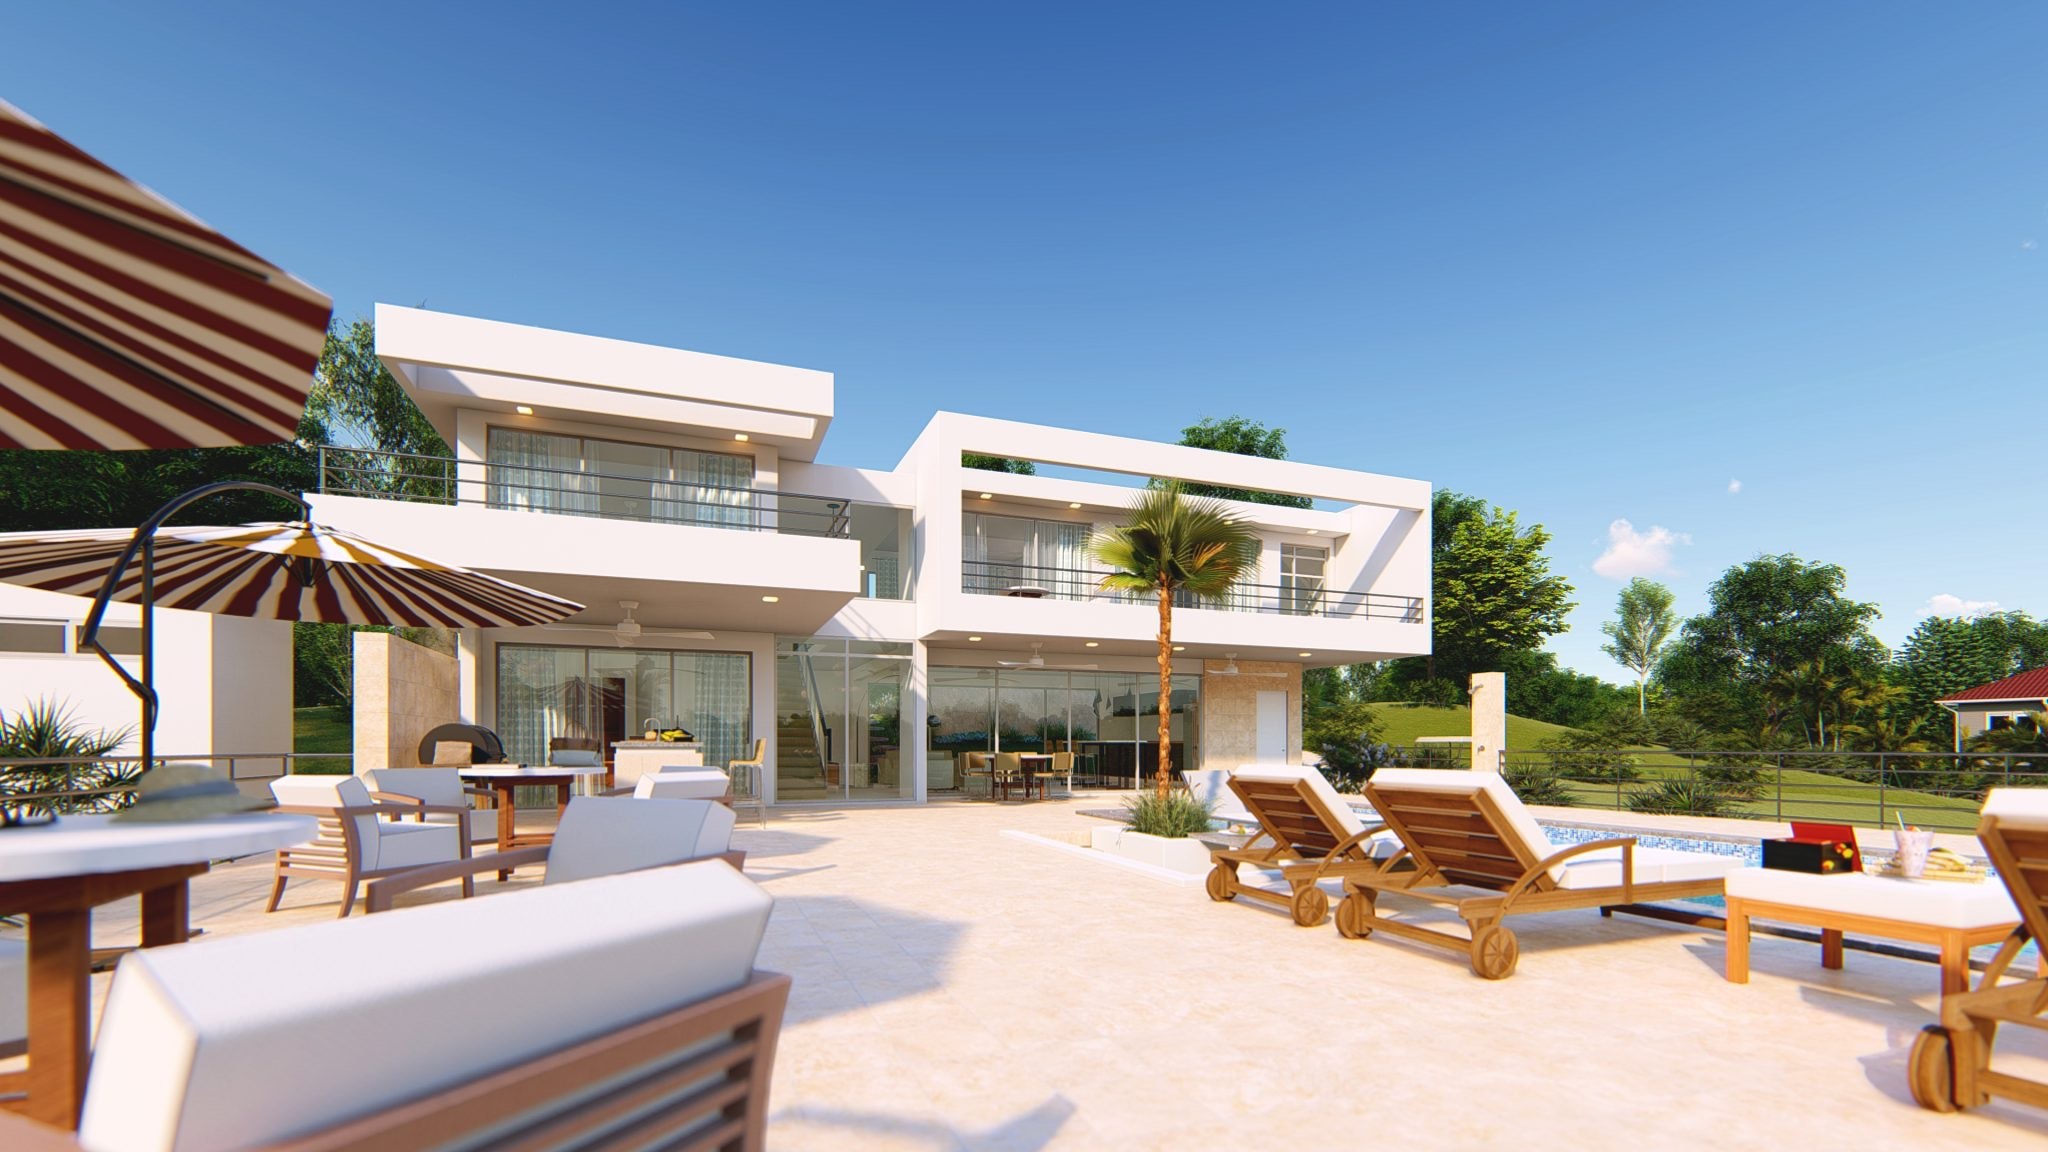 Modern 3 Bedroom Villa Sosua For Sale Dominican Republic